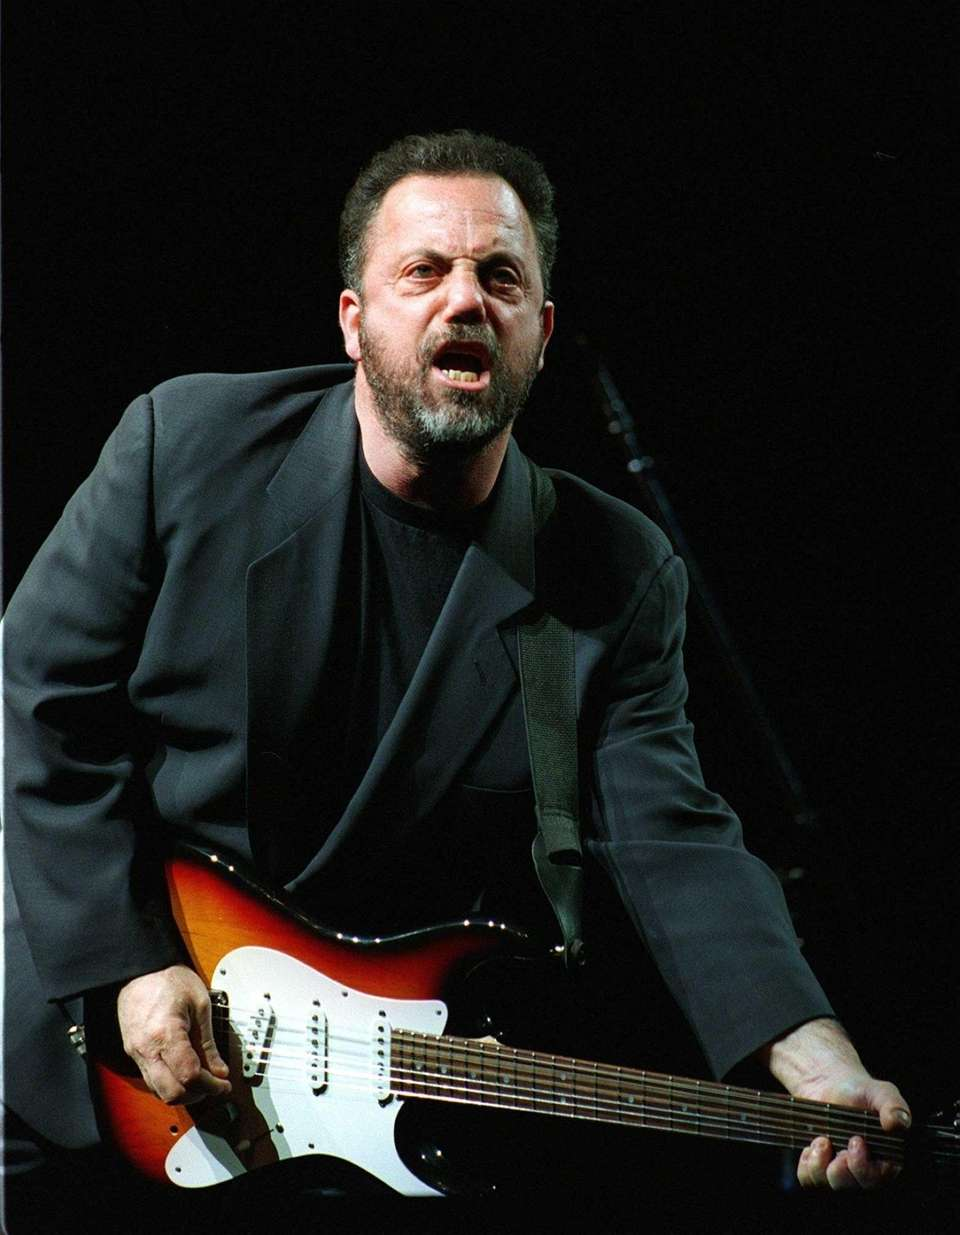 Billy Joel at the Coliseum on Dec. 29,